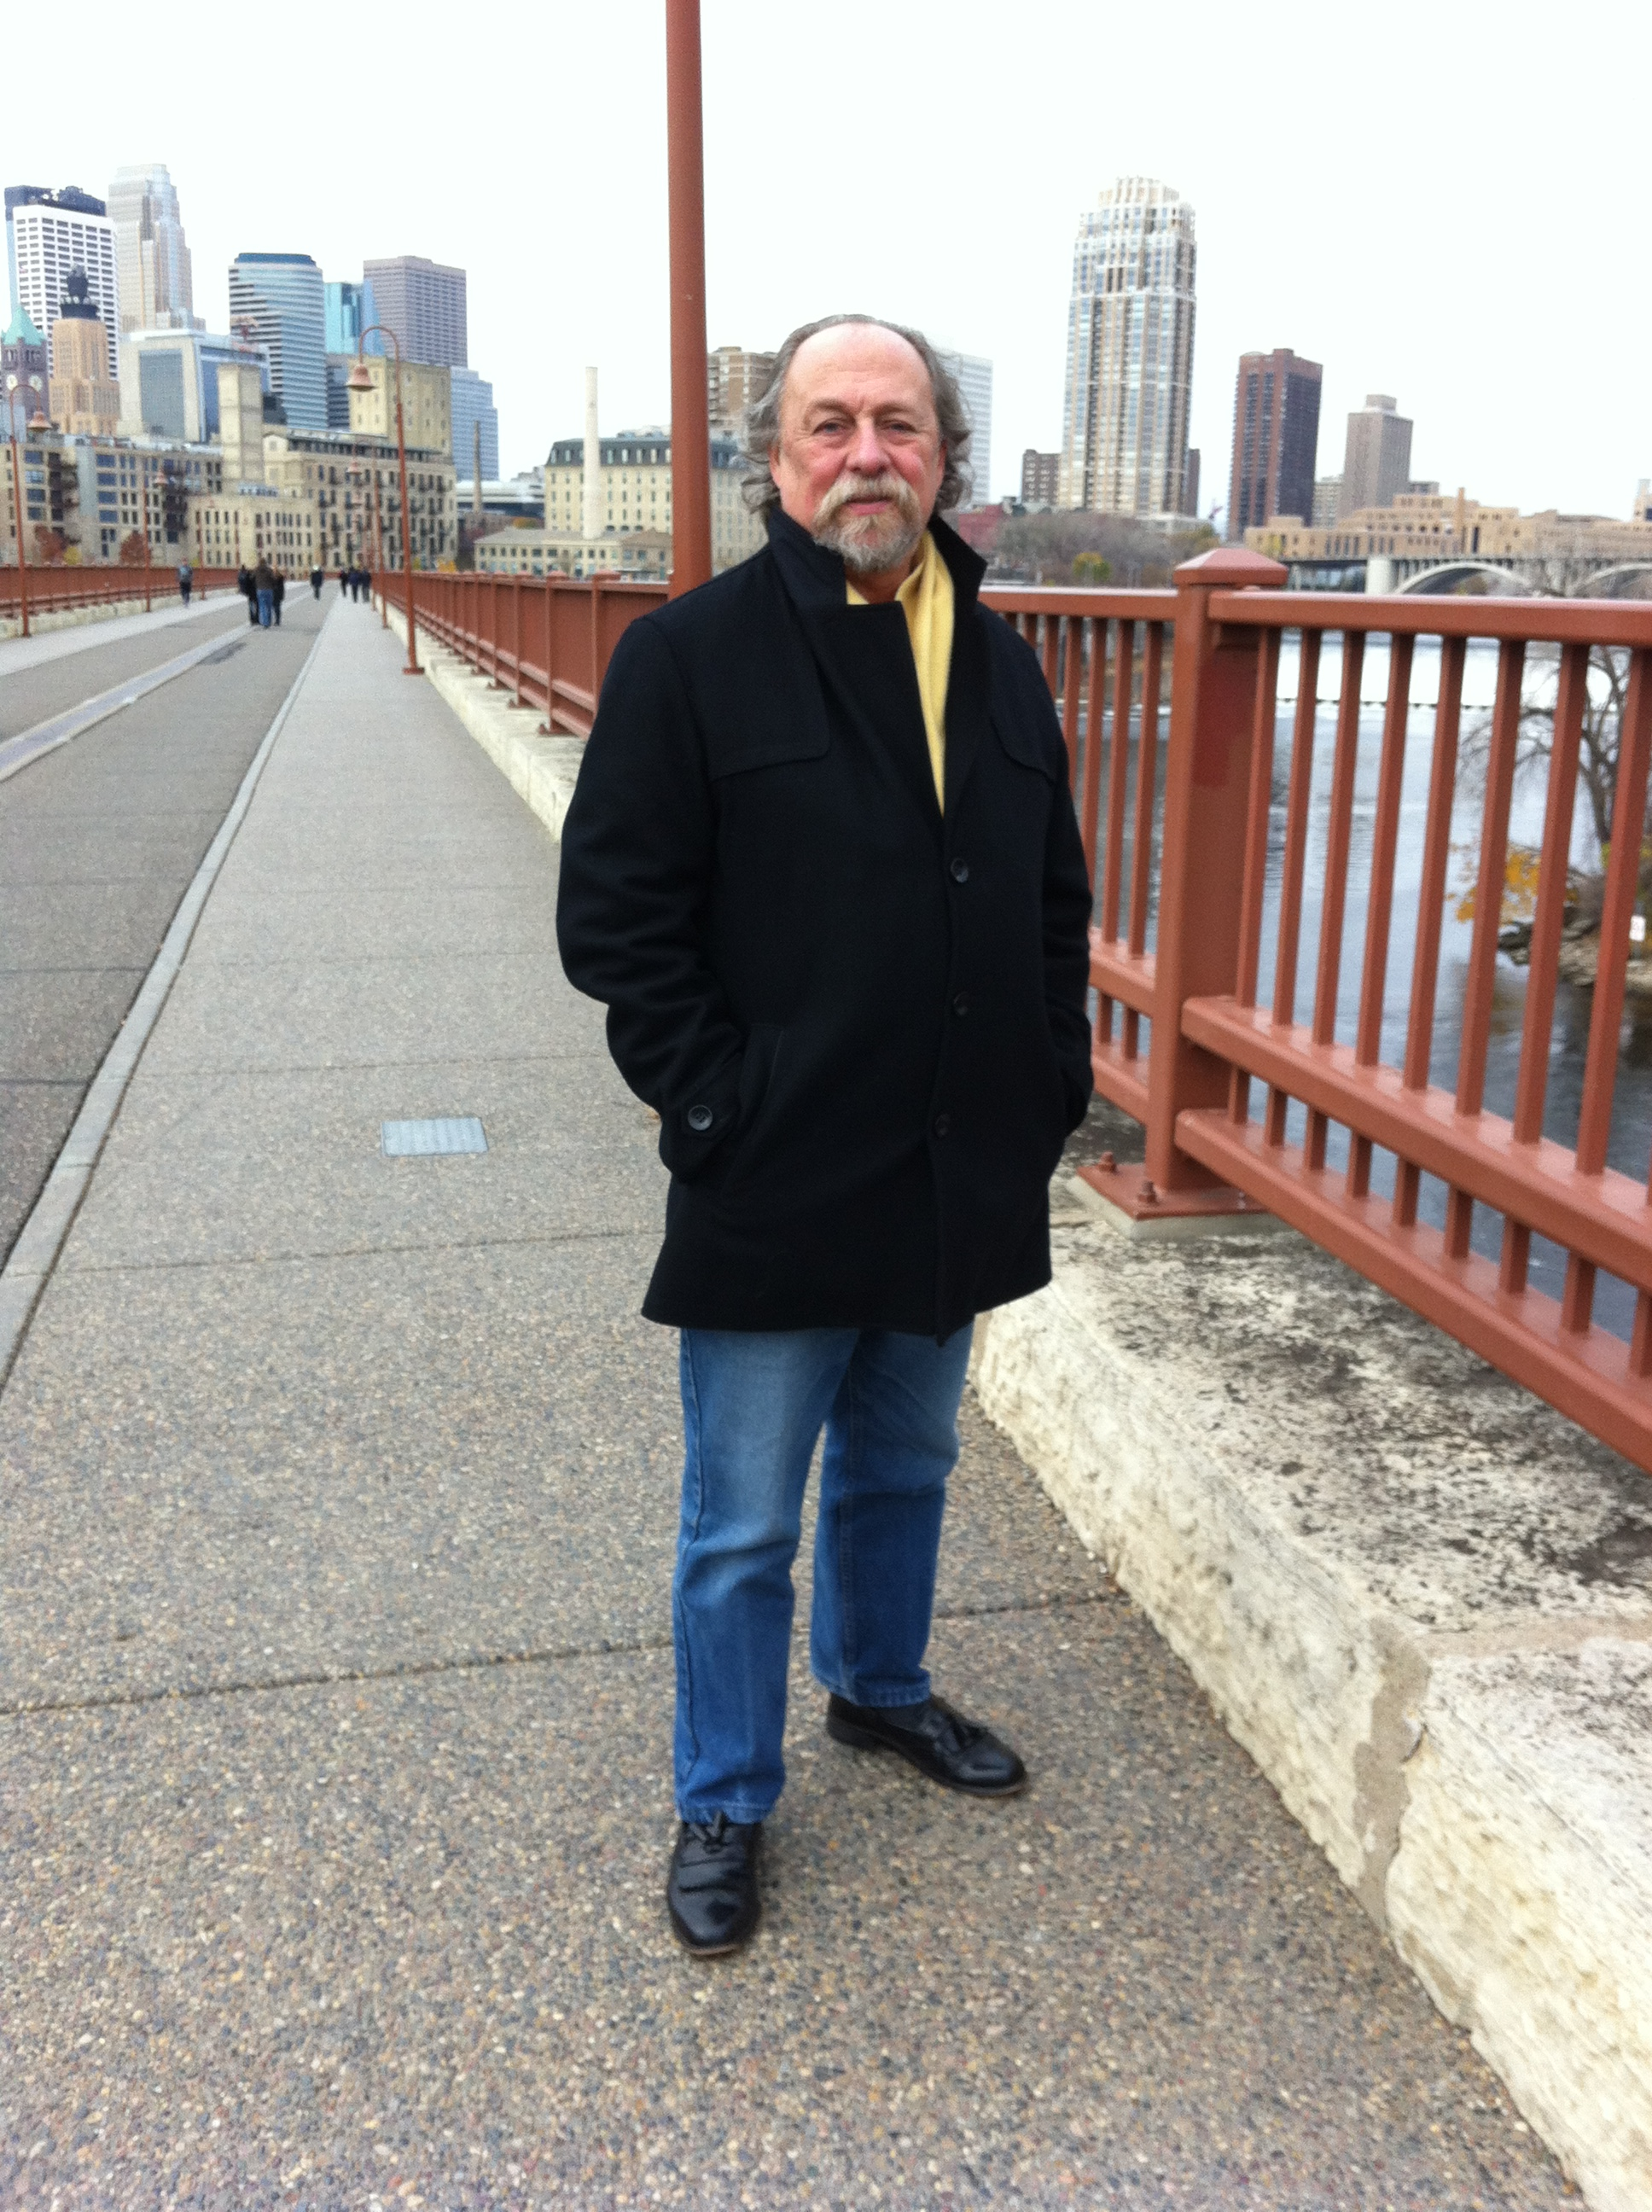 Terrance on the Stone Arch Bridge in Mpls